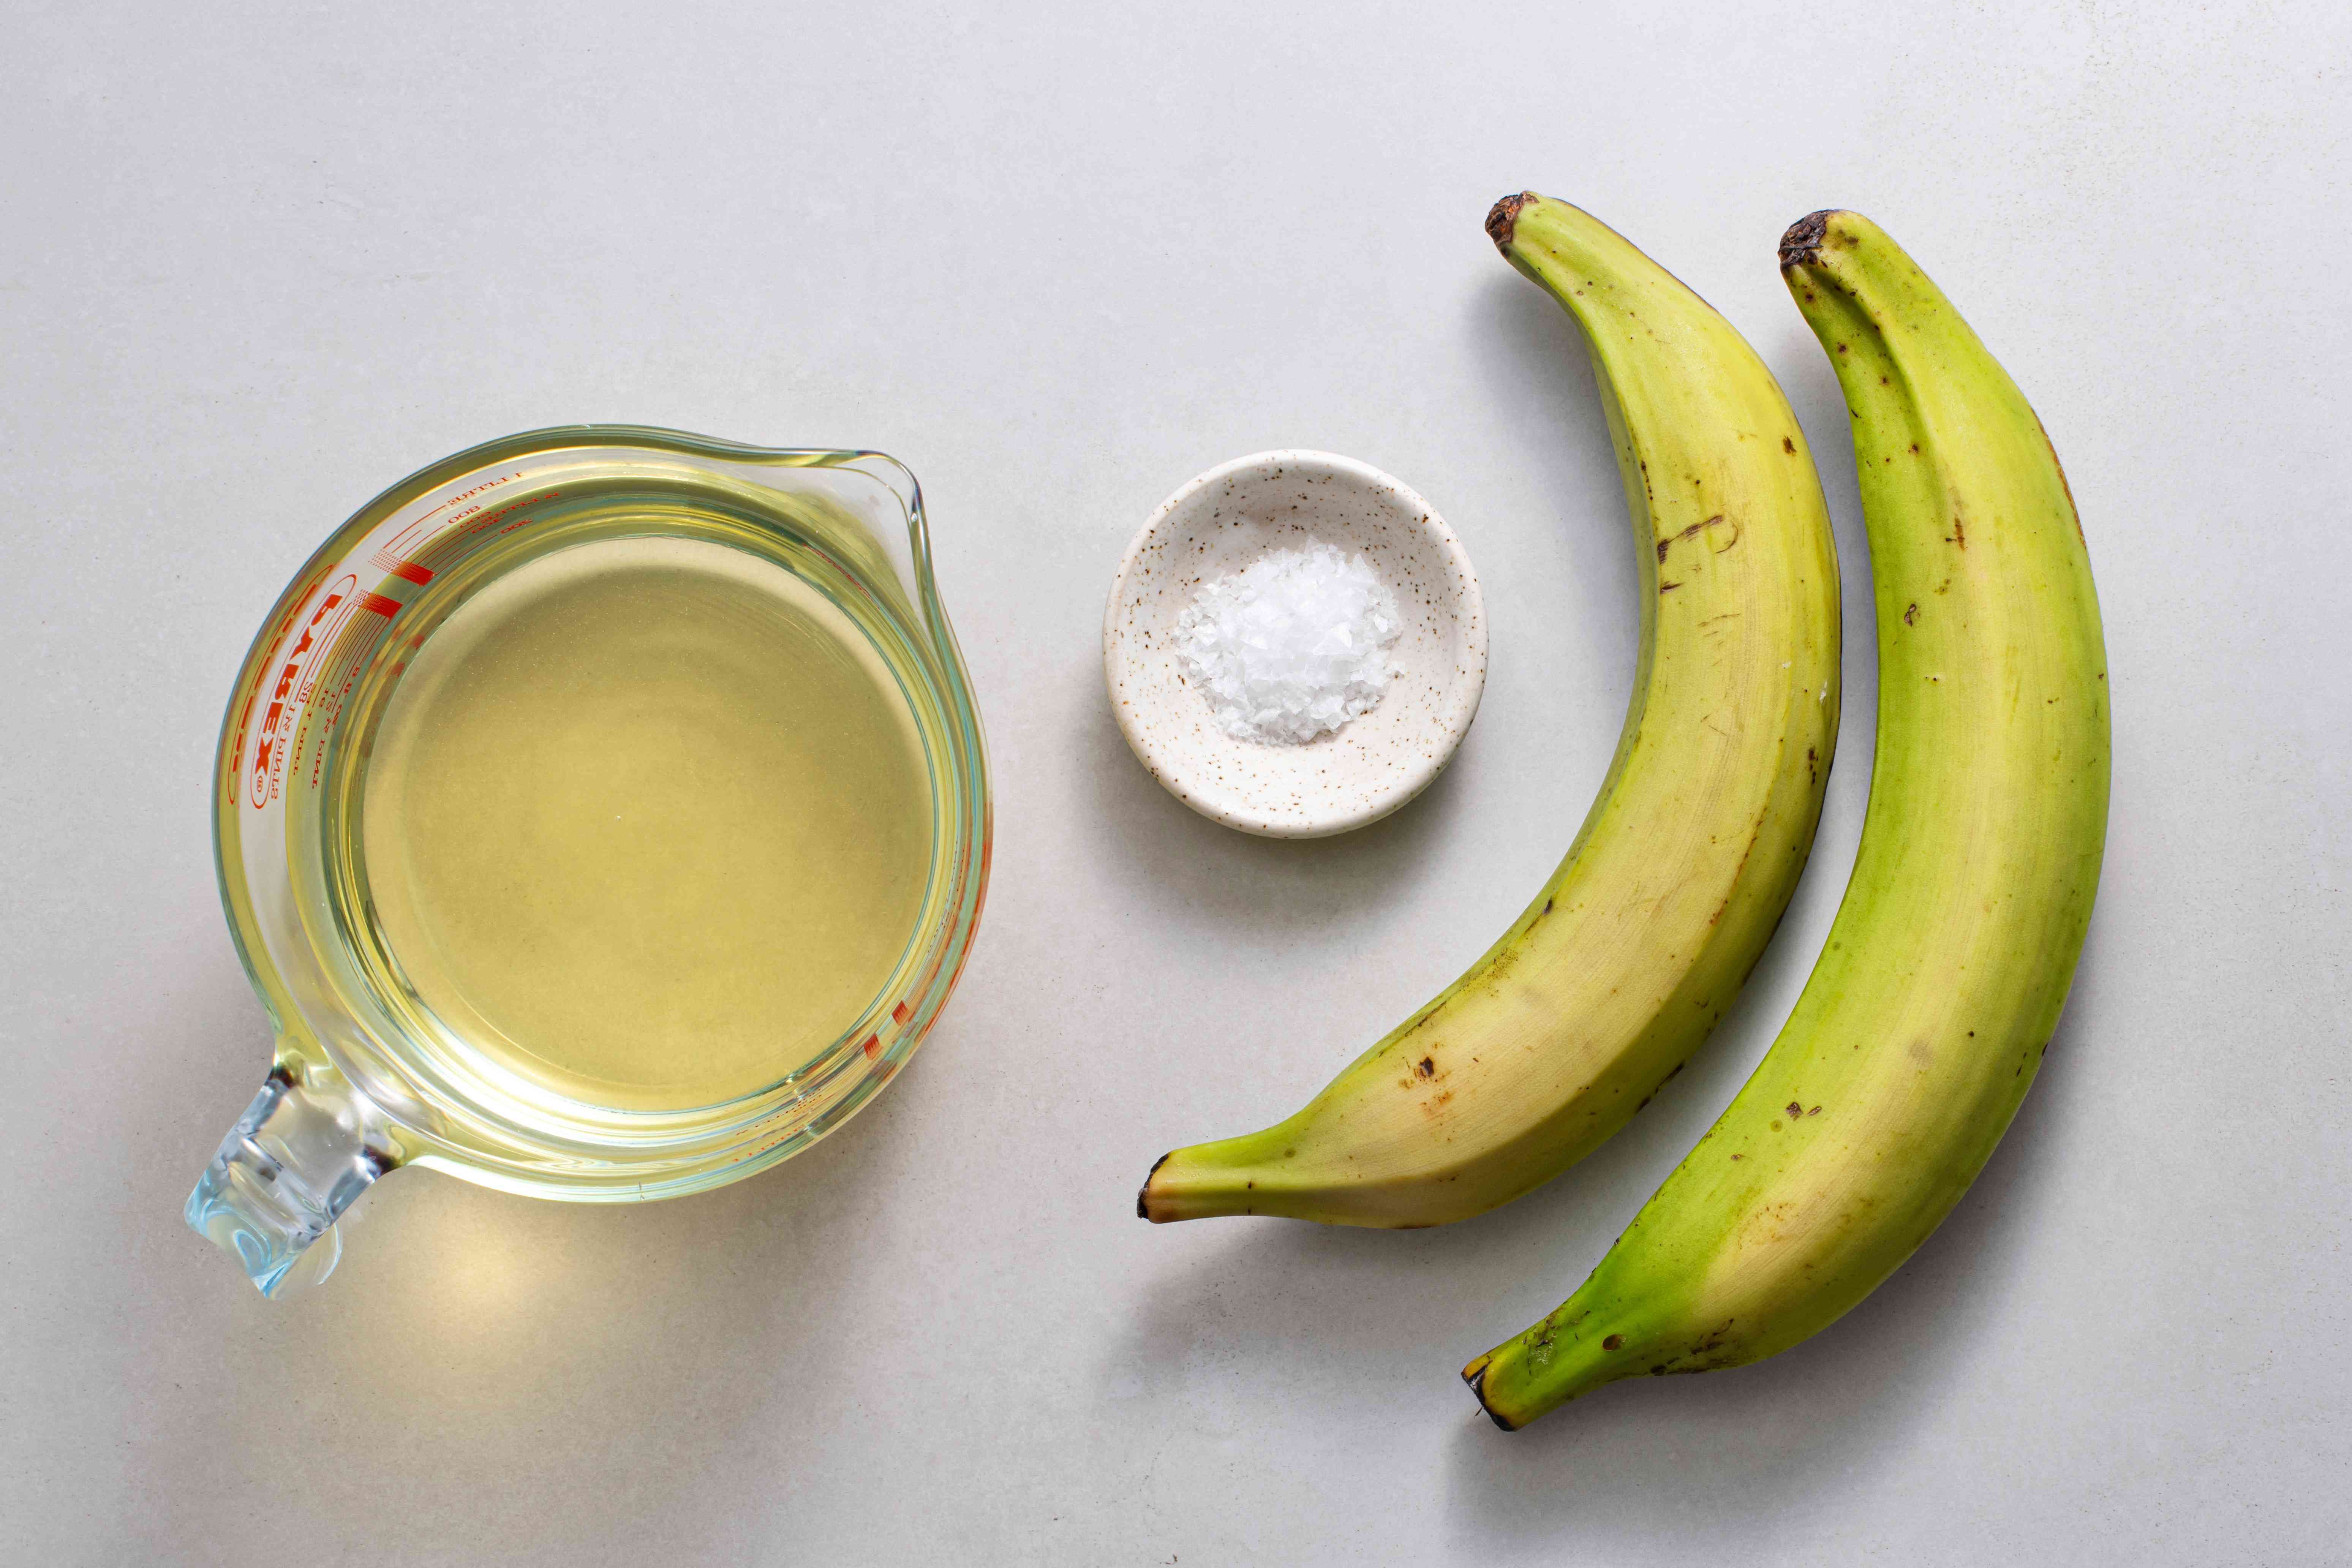 Fried Plantain Chips (Chifles) ingredients